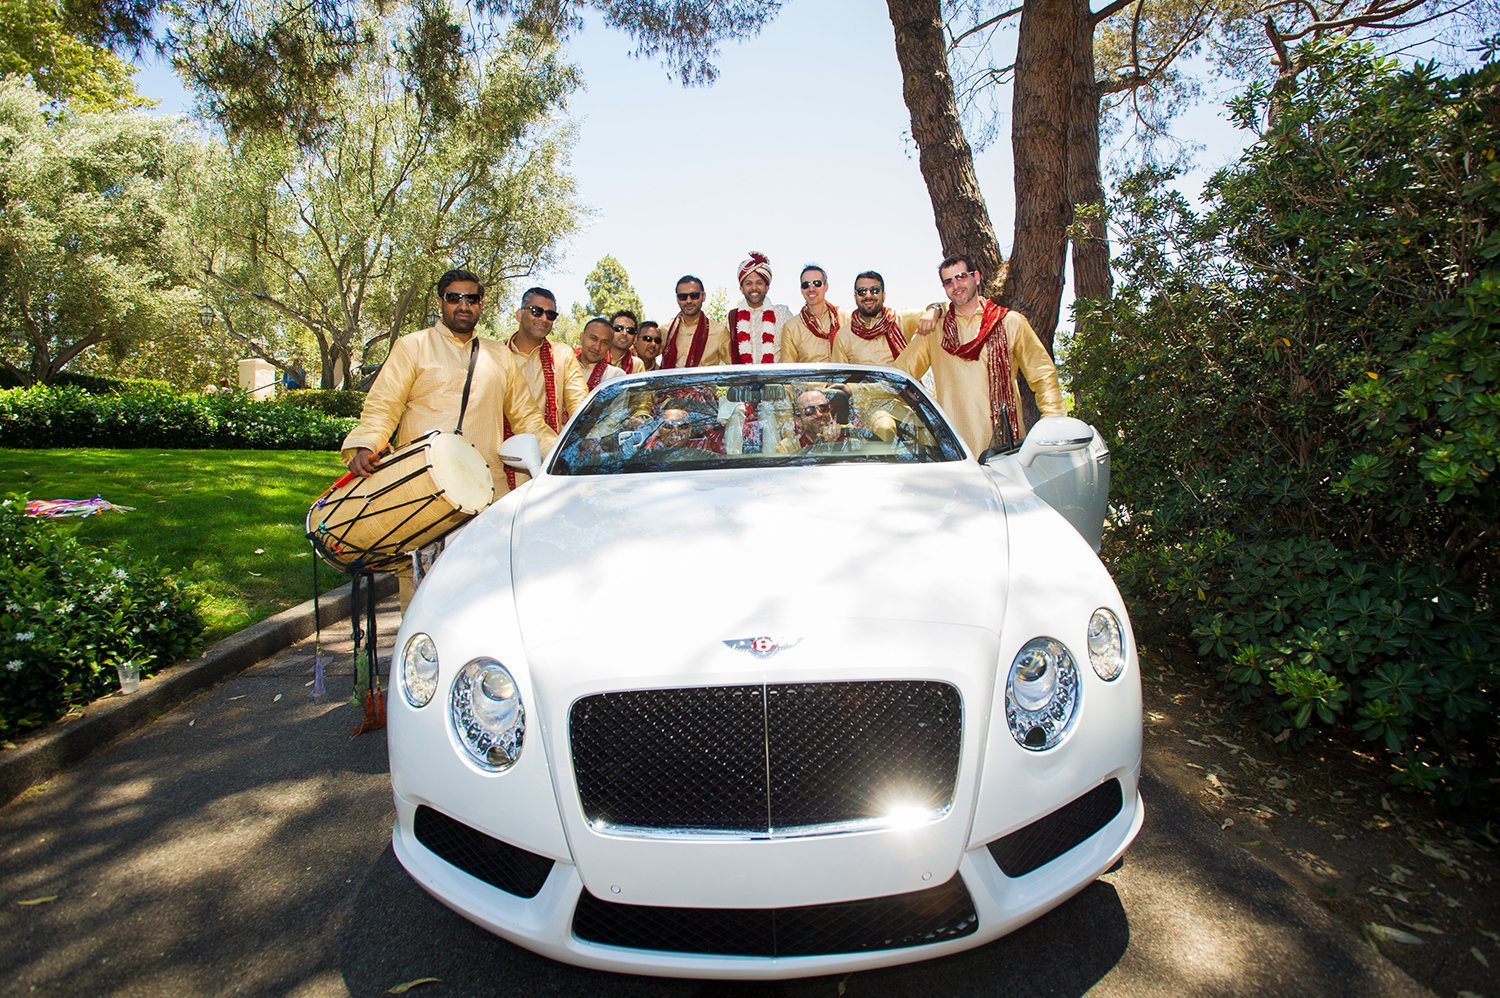 Baraat in style | Indian Groom and Groomsmen with a Bentley for their Baraat